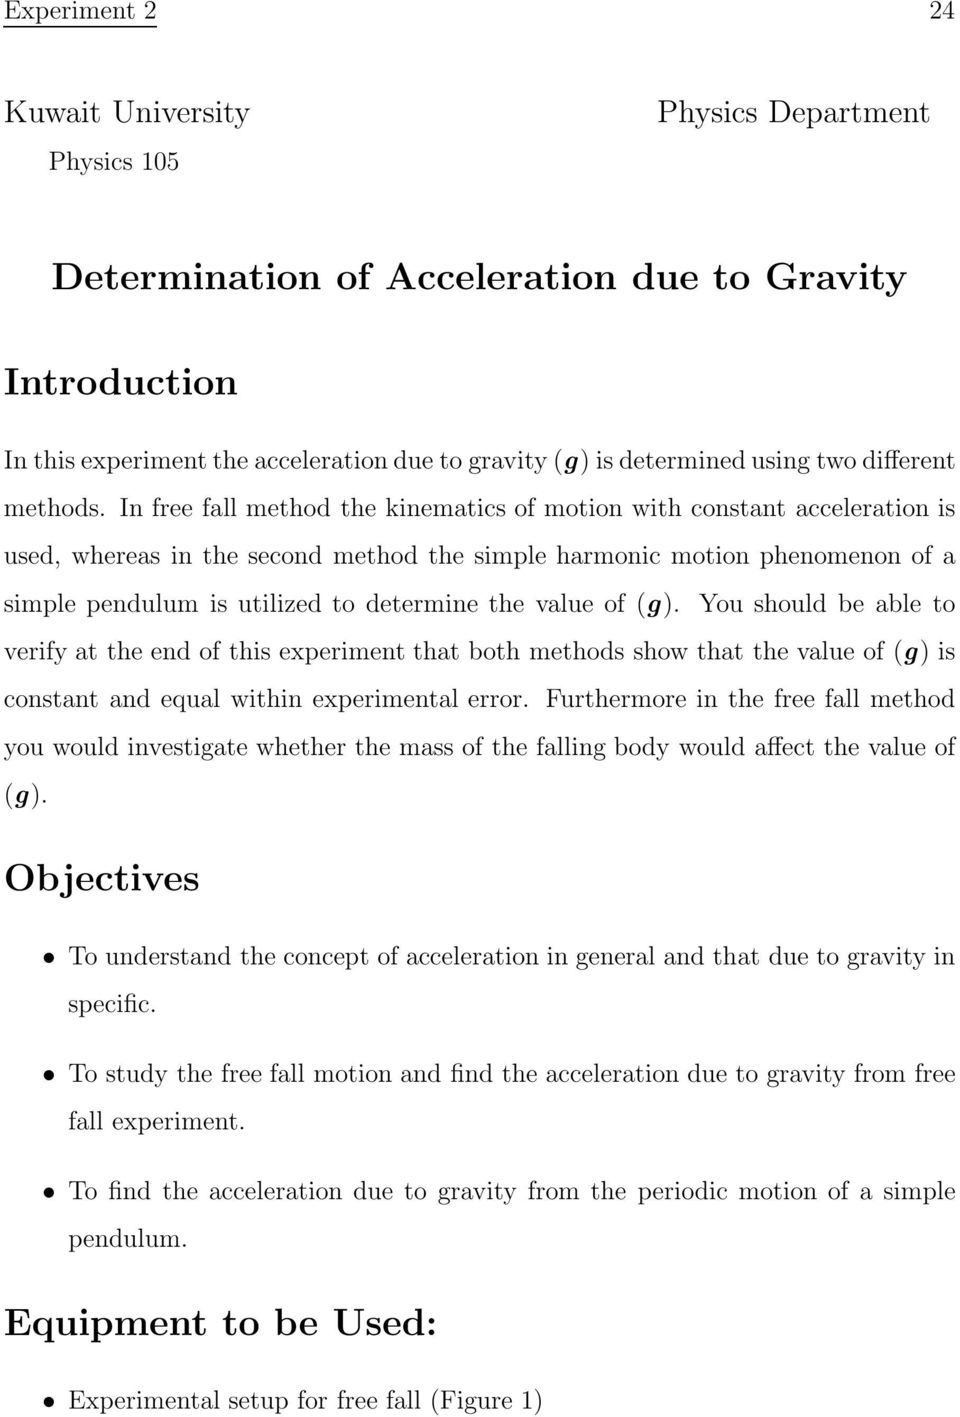 In free fall method the kinematics of motion with constant acceleration is used, whereas in the second method the simple harmonic motion phenomenon of a simple pendulum is utilized to determine the